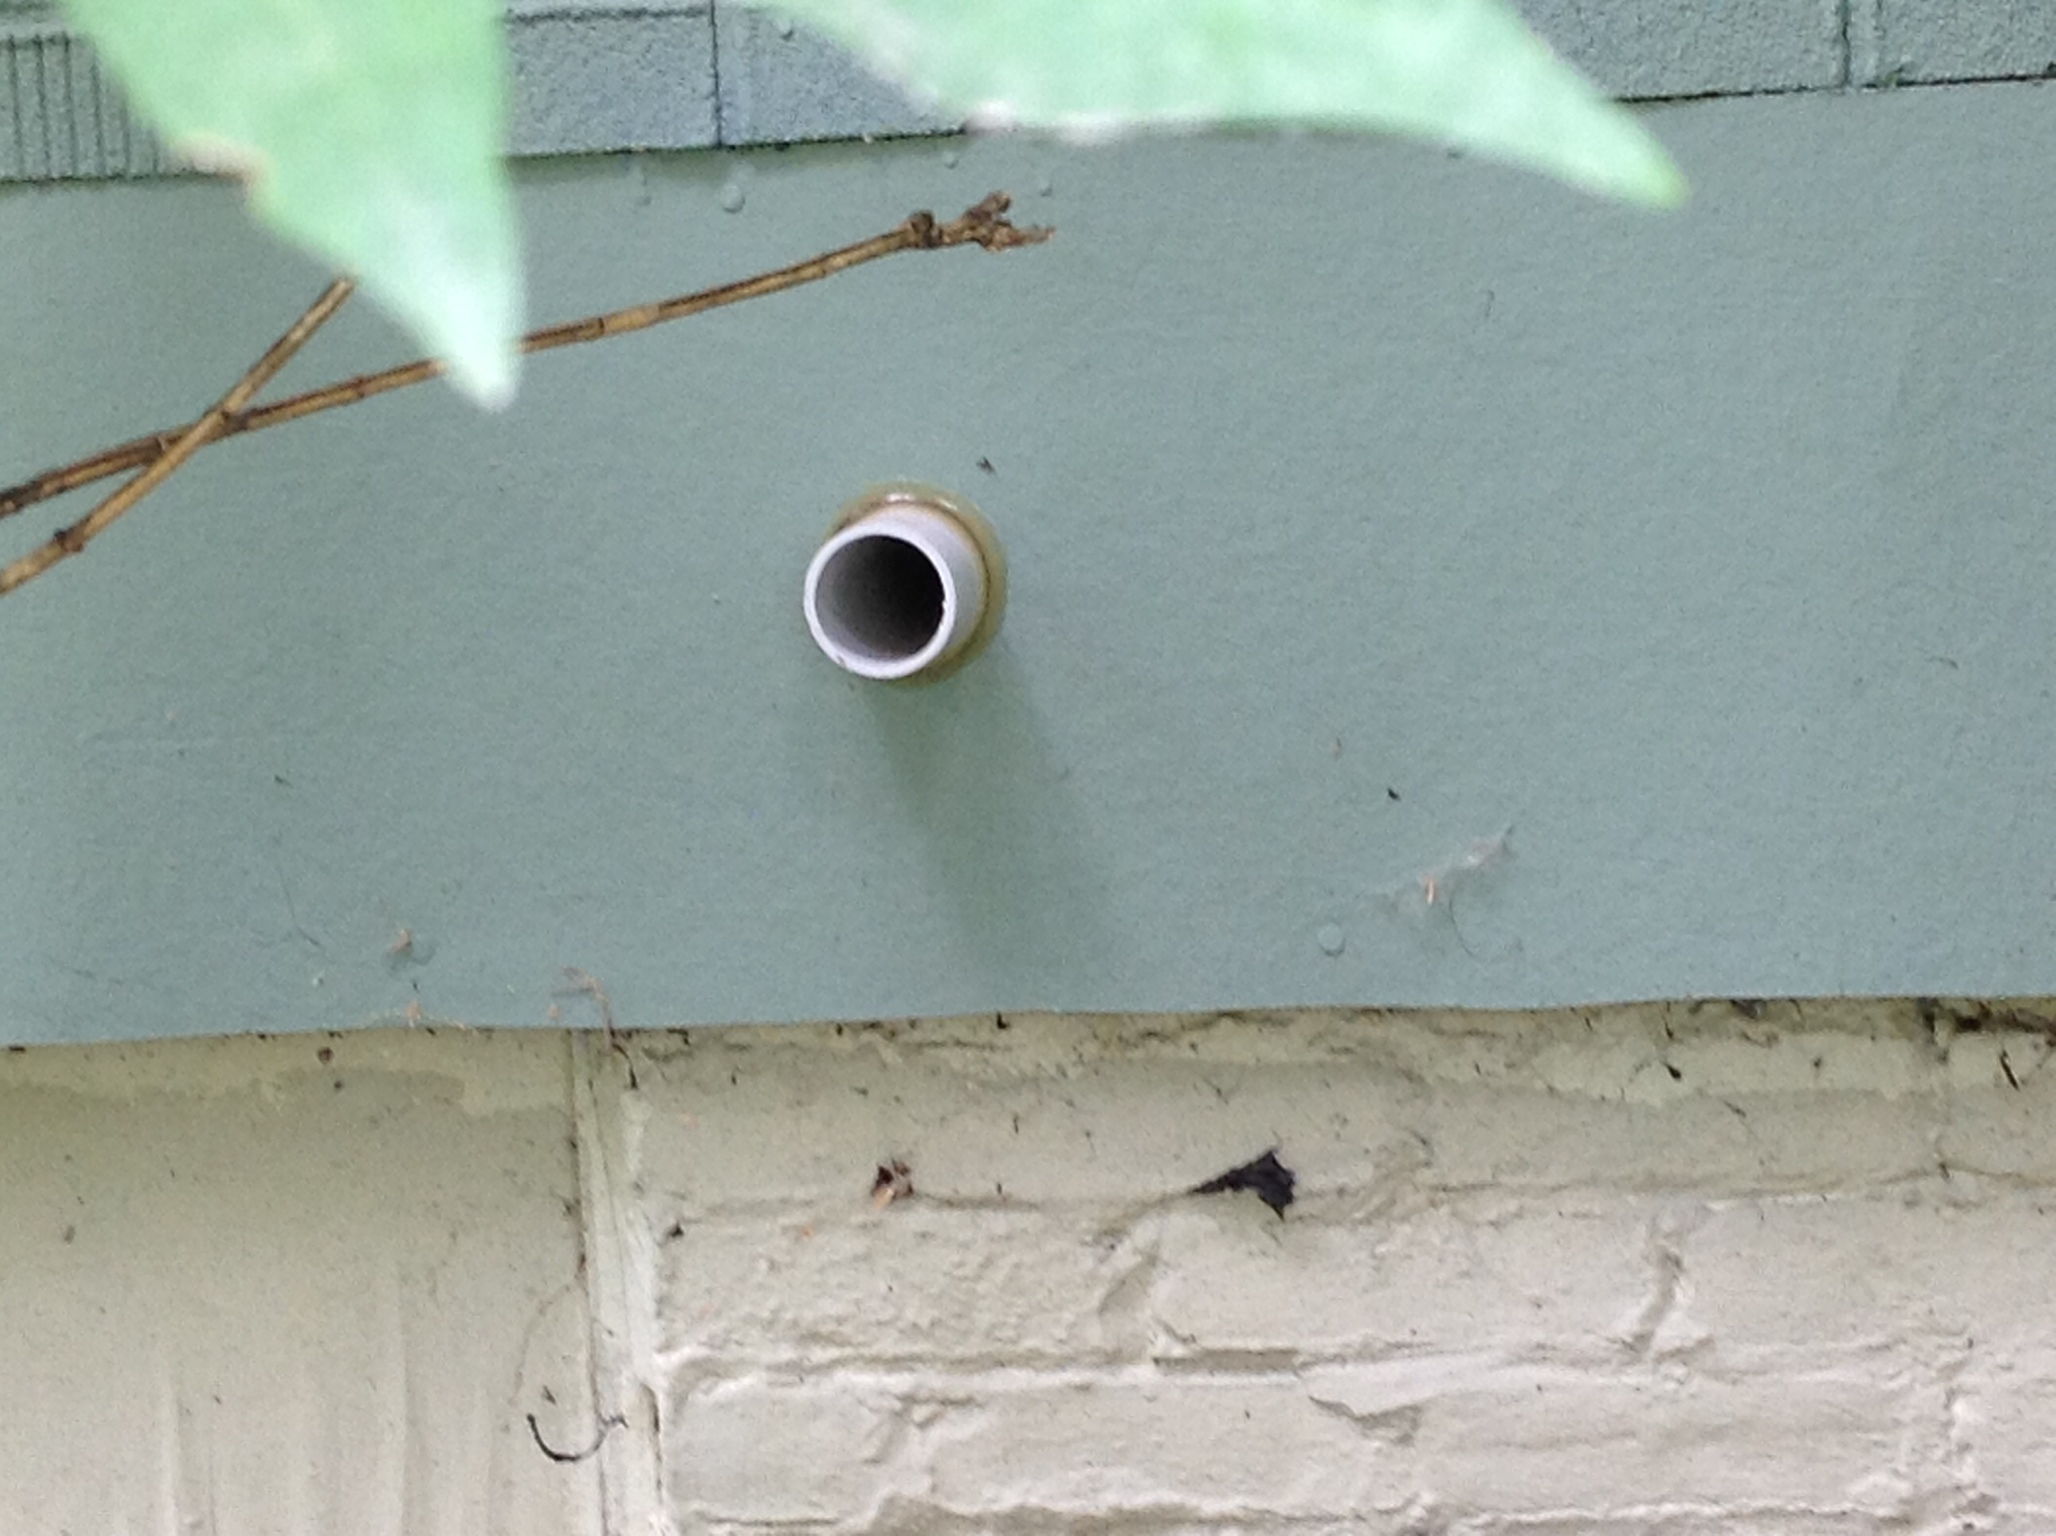 This little vent pipe replaces the crumbling brick chimney because the 95% efficient furnace vents cooler air.